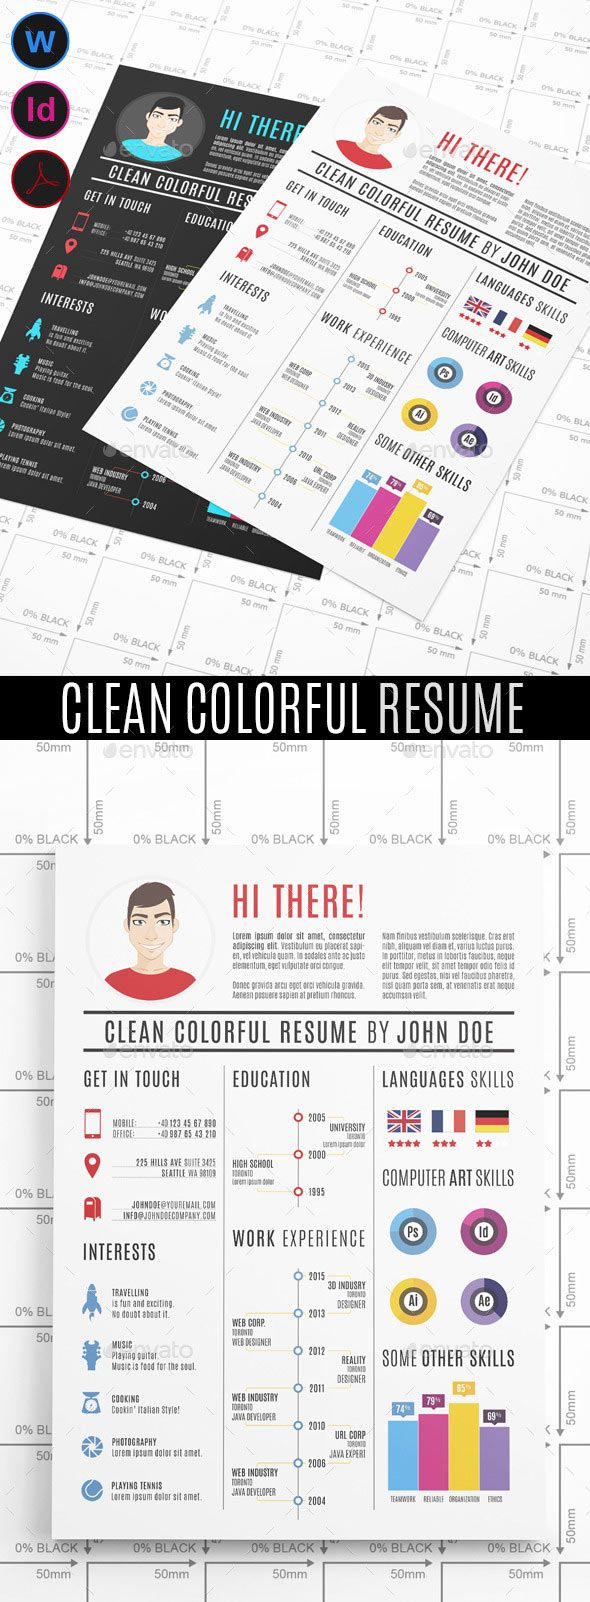 17 best images about infographic visual resumes if so how will your resume get noticed in a crowded job market shouldn t your resume be the one that stands out from other applicants